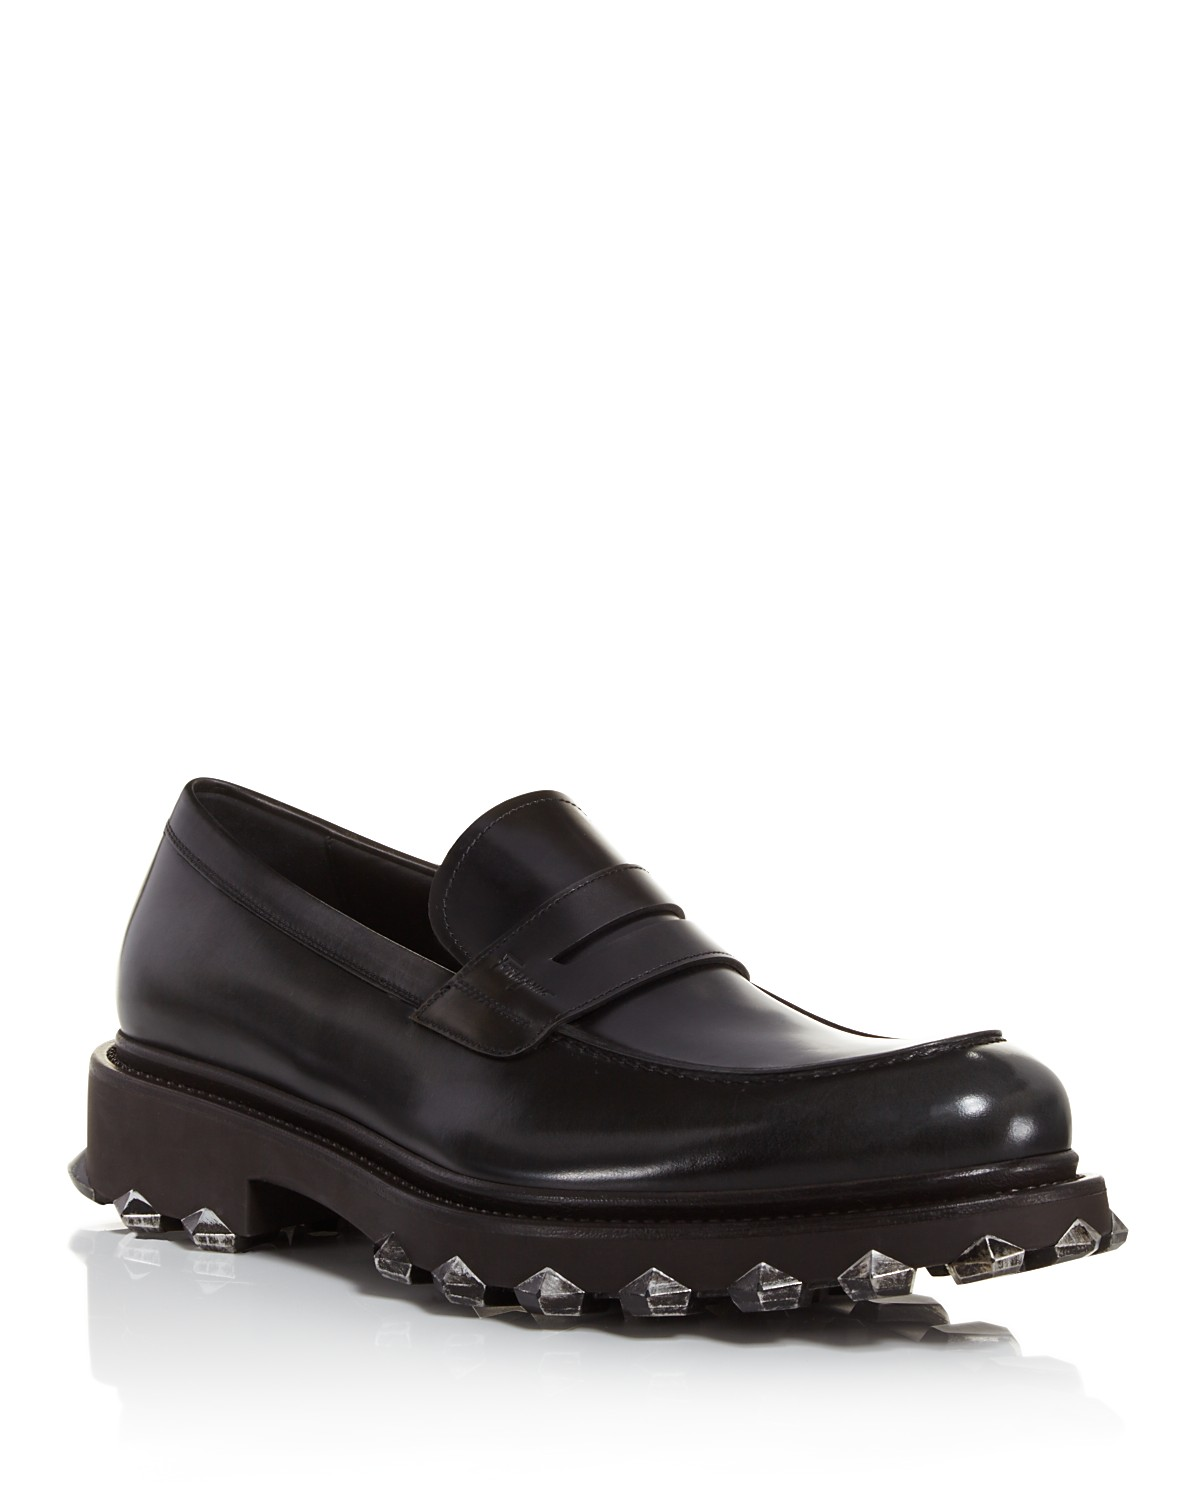 Salvatore FerragamoMen's Darsen Leather Loafers with Injected Rubber Spikes